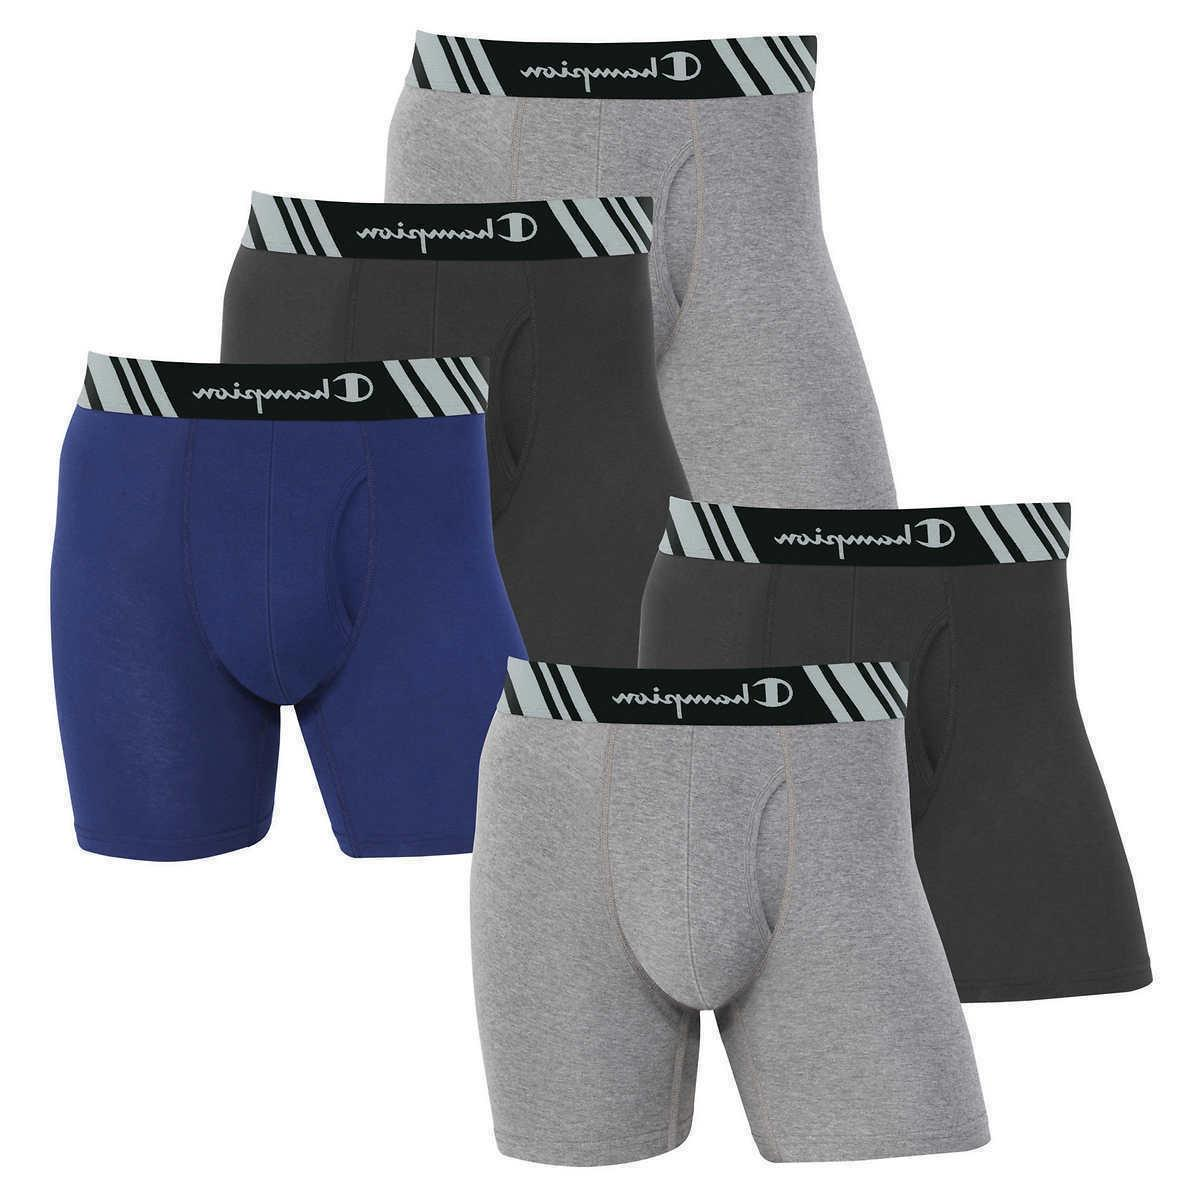 XL Large 5 Pack Champion Men/'s Boxer Brief with Double Dry Technology Medium